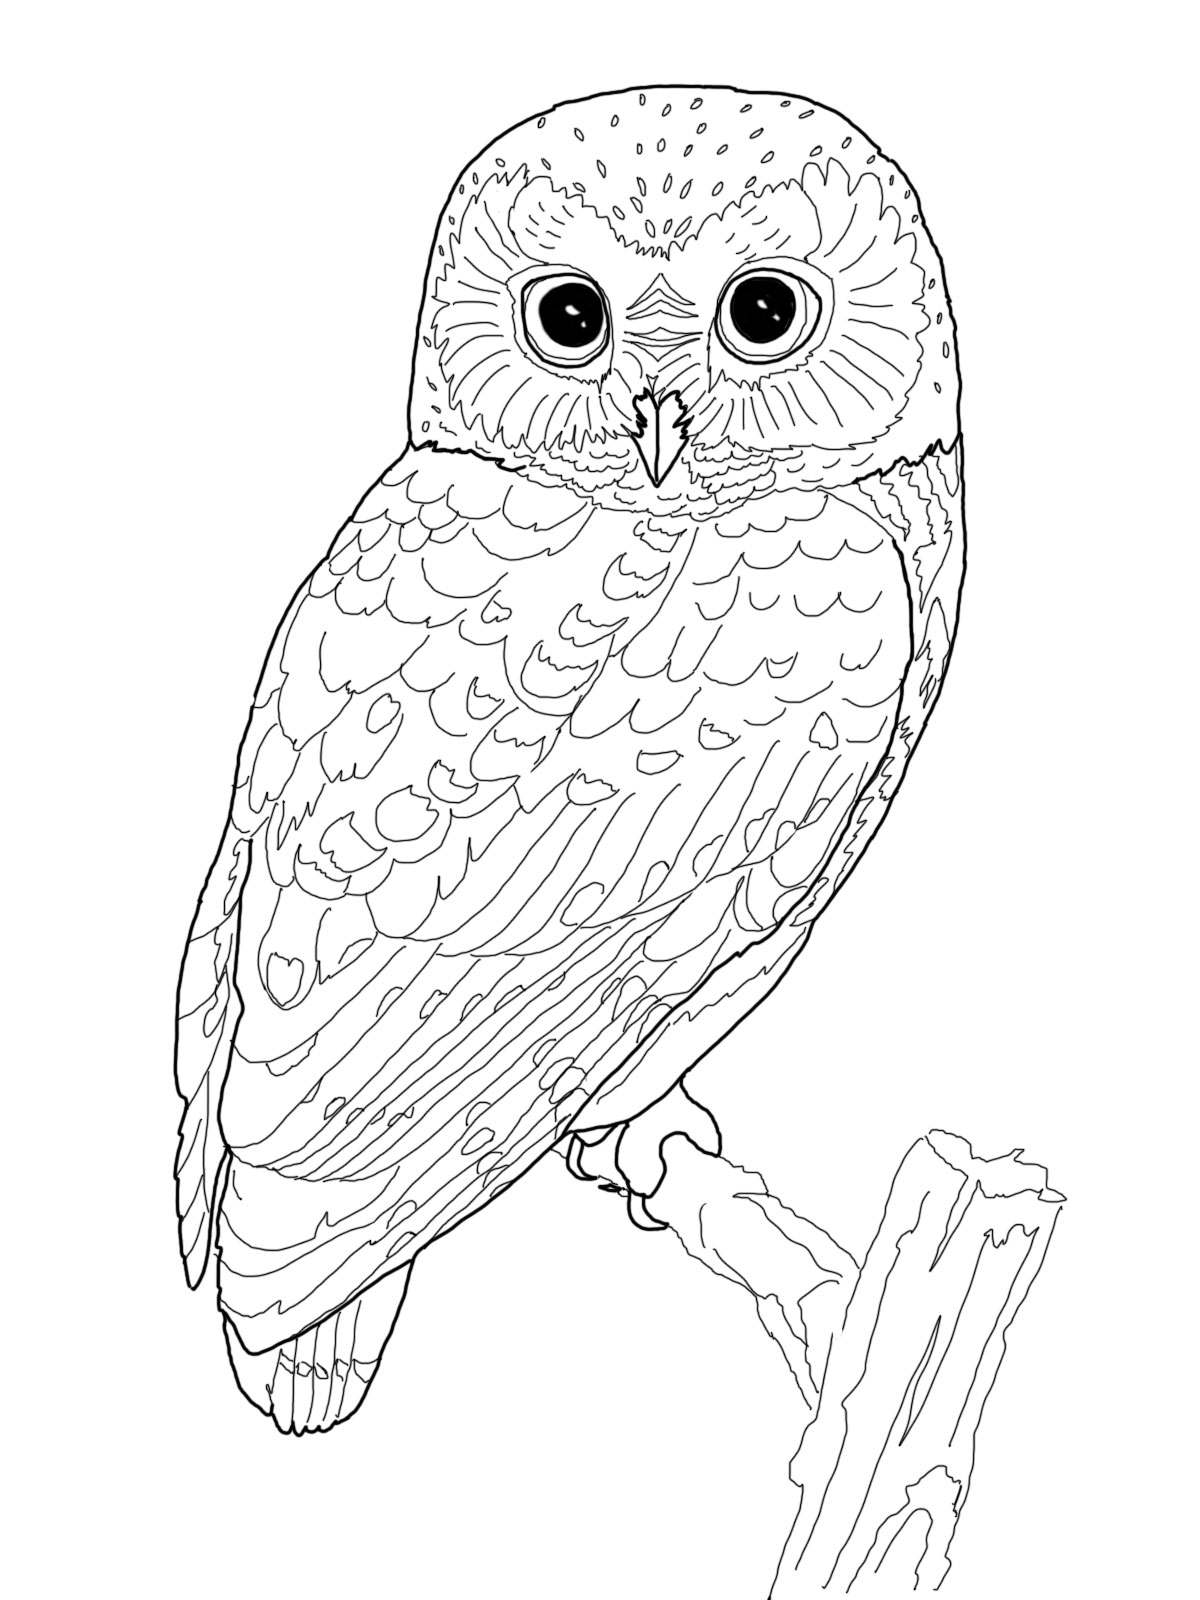 kid outline coloring page owl coloring pages owl coloring pages coloring outline kid page